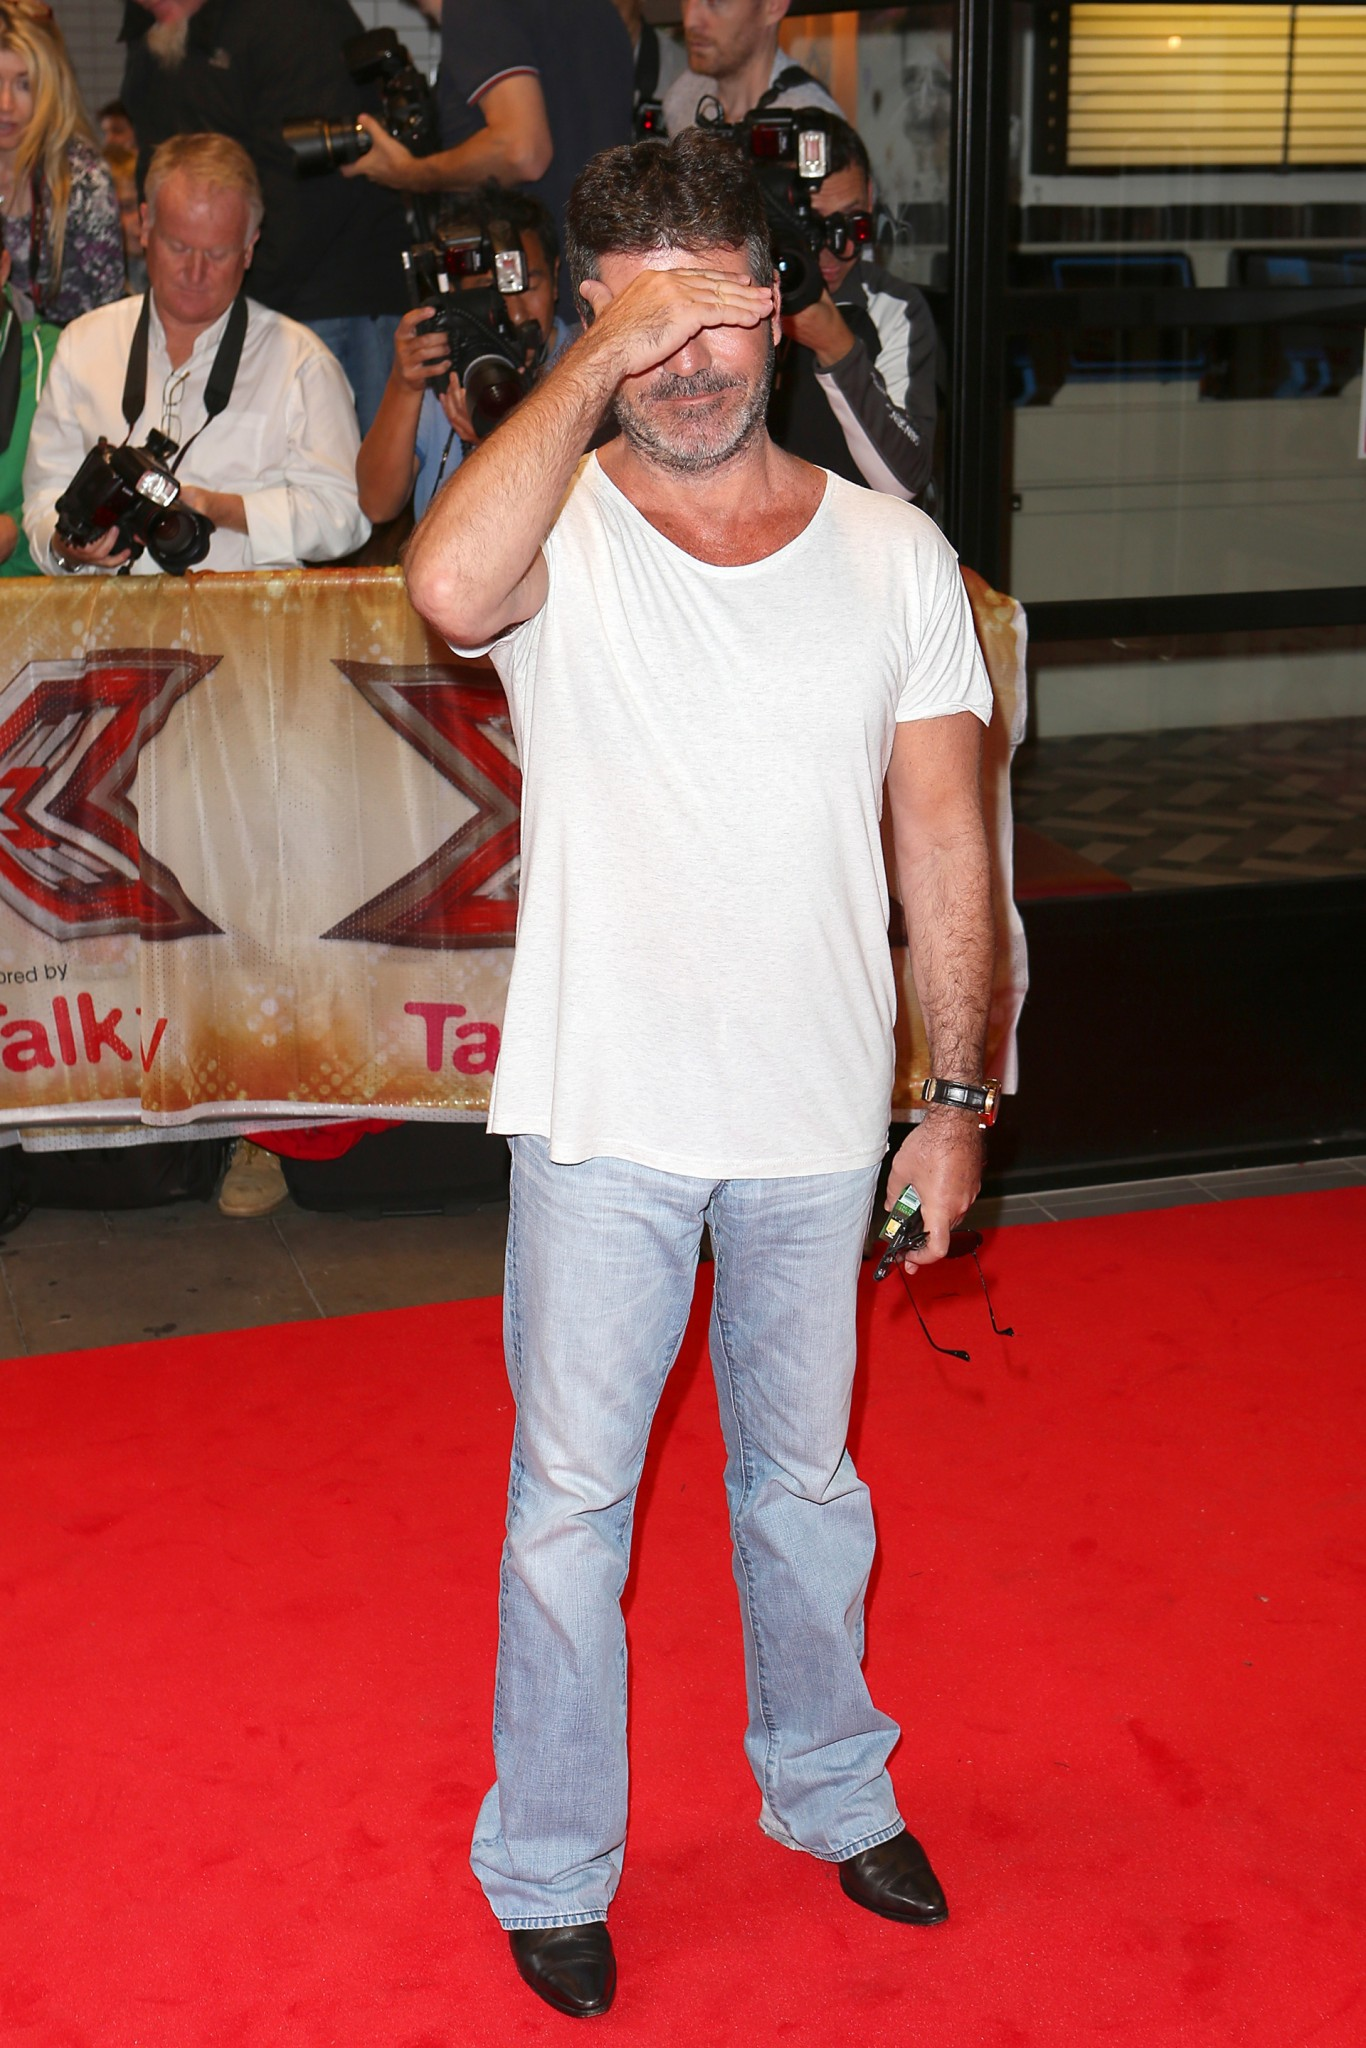 Simon Cowell on red carpet at X Factor launch